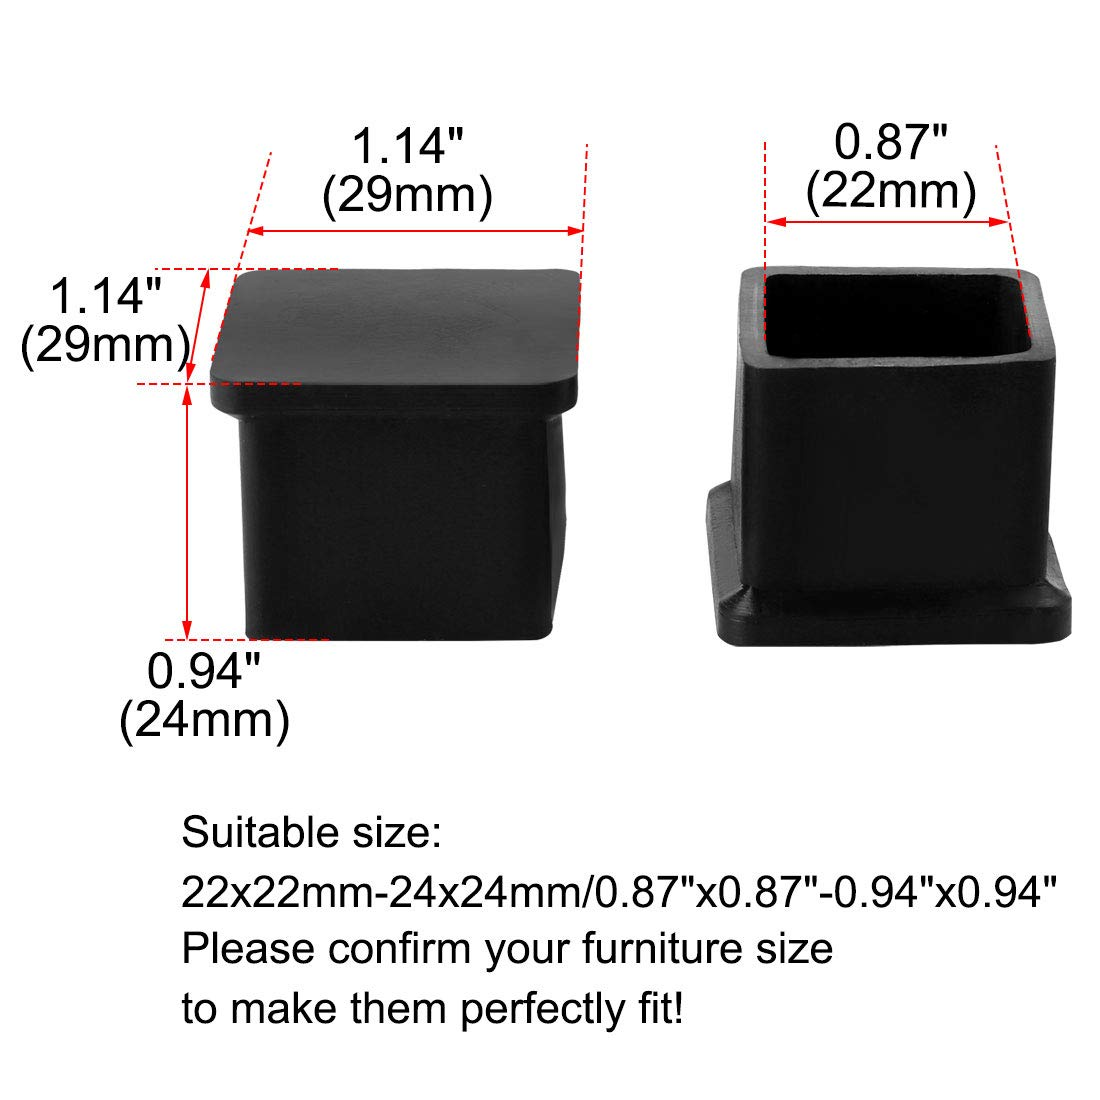 uxcell PVC Table Leg Cap End Tip Feet Cover Furniture Glide Floor Protector 24pcs 1.26 x 1.26 Inner Size Reduce Noise Prevent Scratch 32x32mm